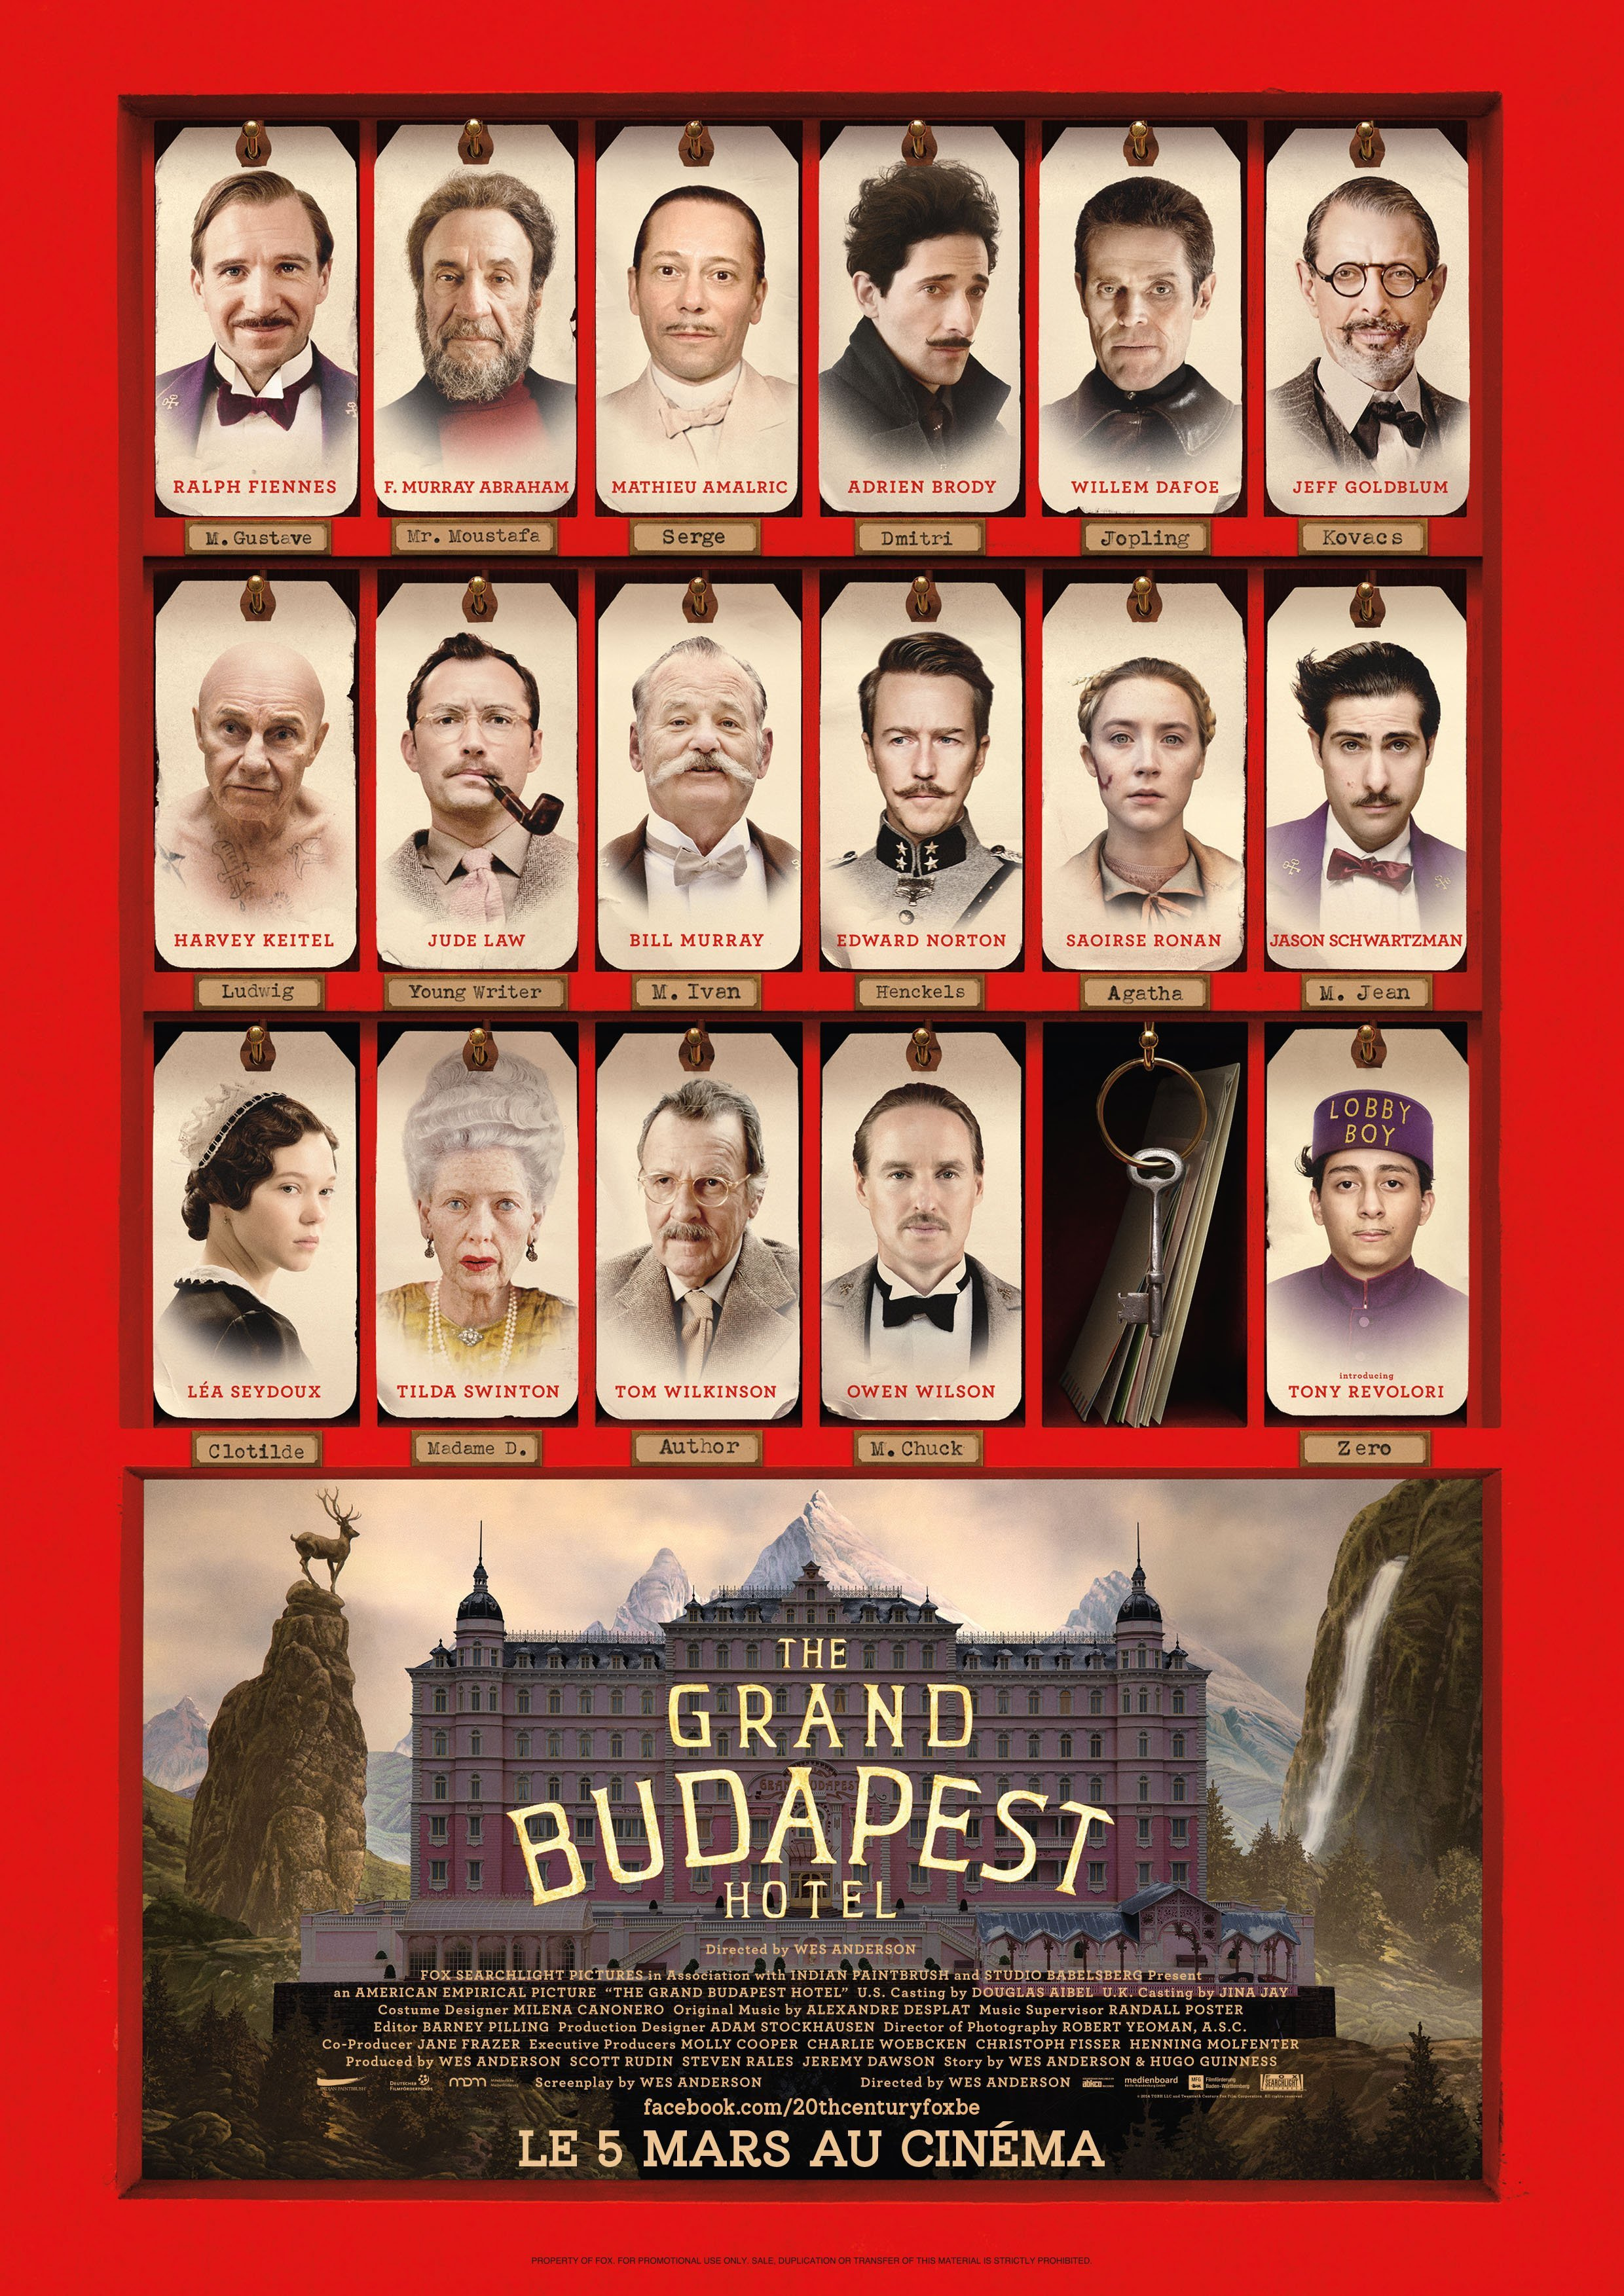 the-grand-budapest-hotel-affiche-france.jpg (2480×3507)